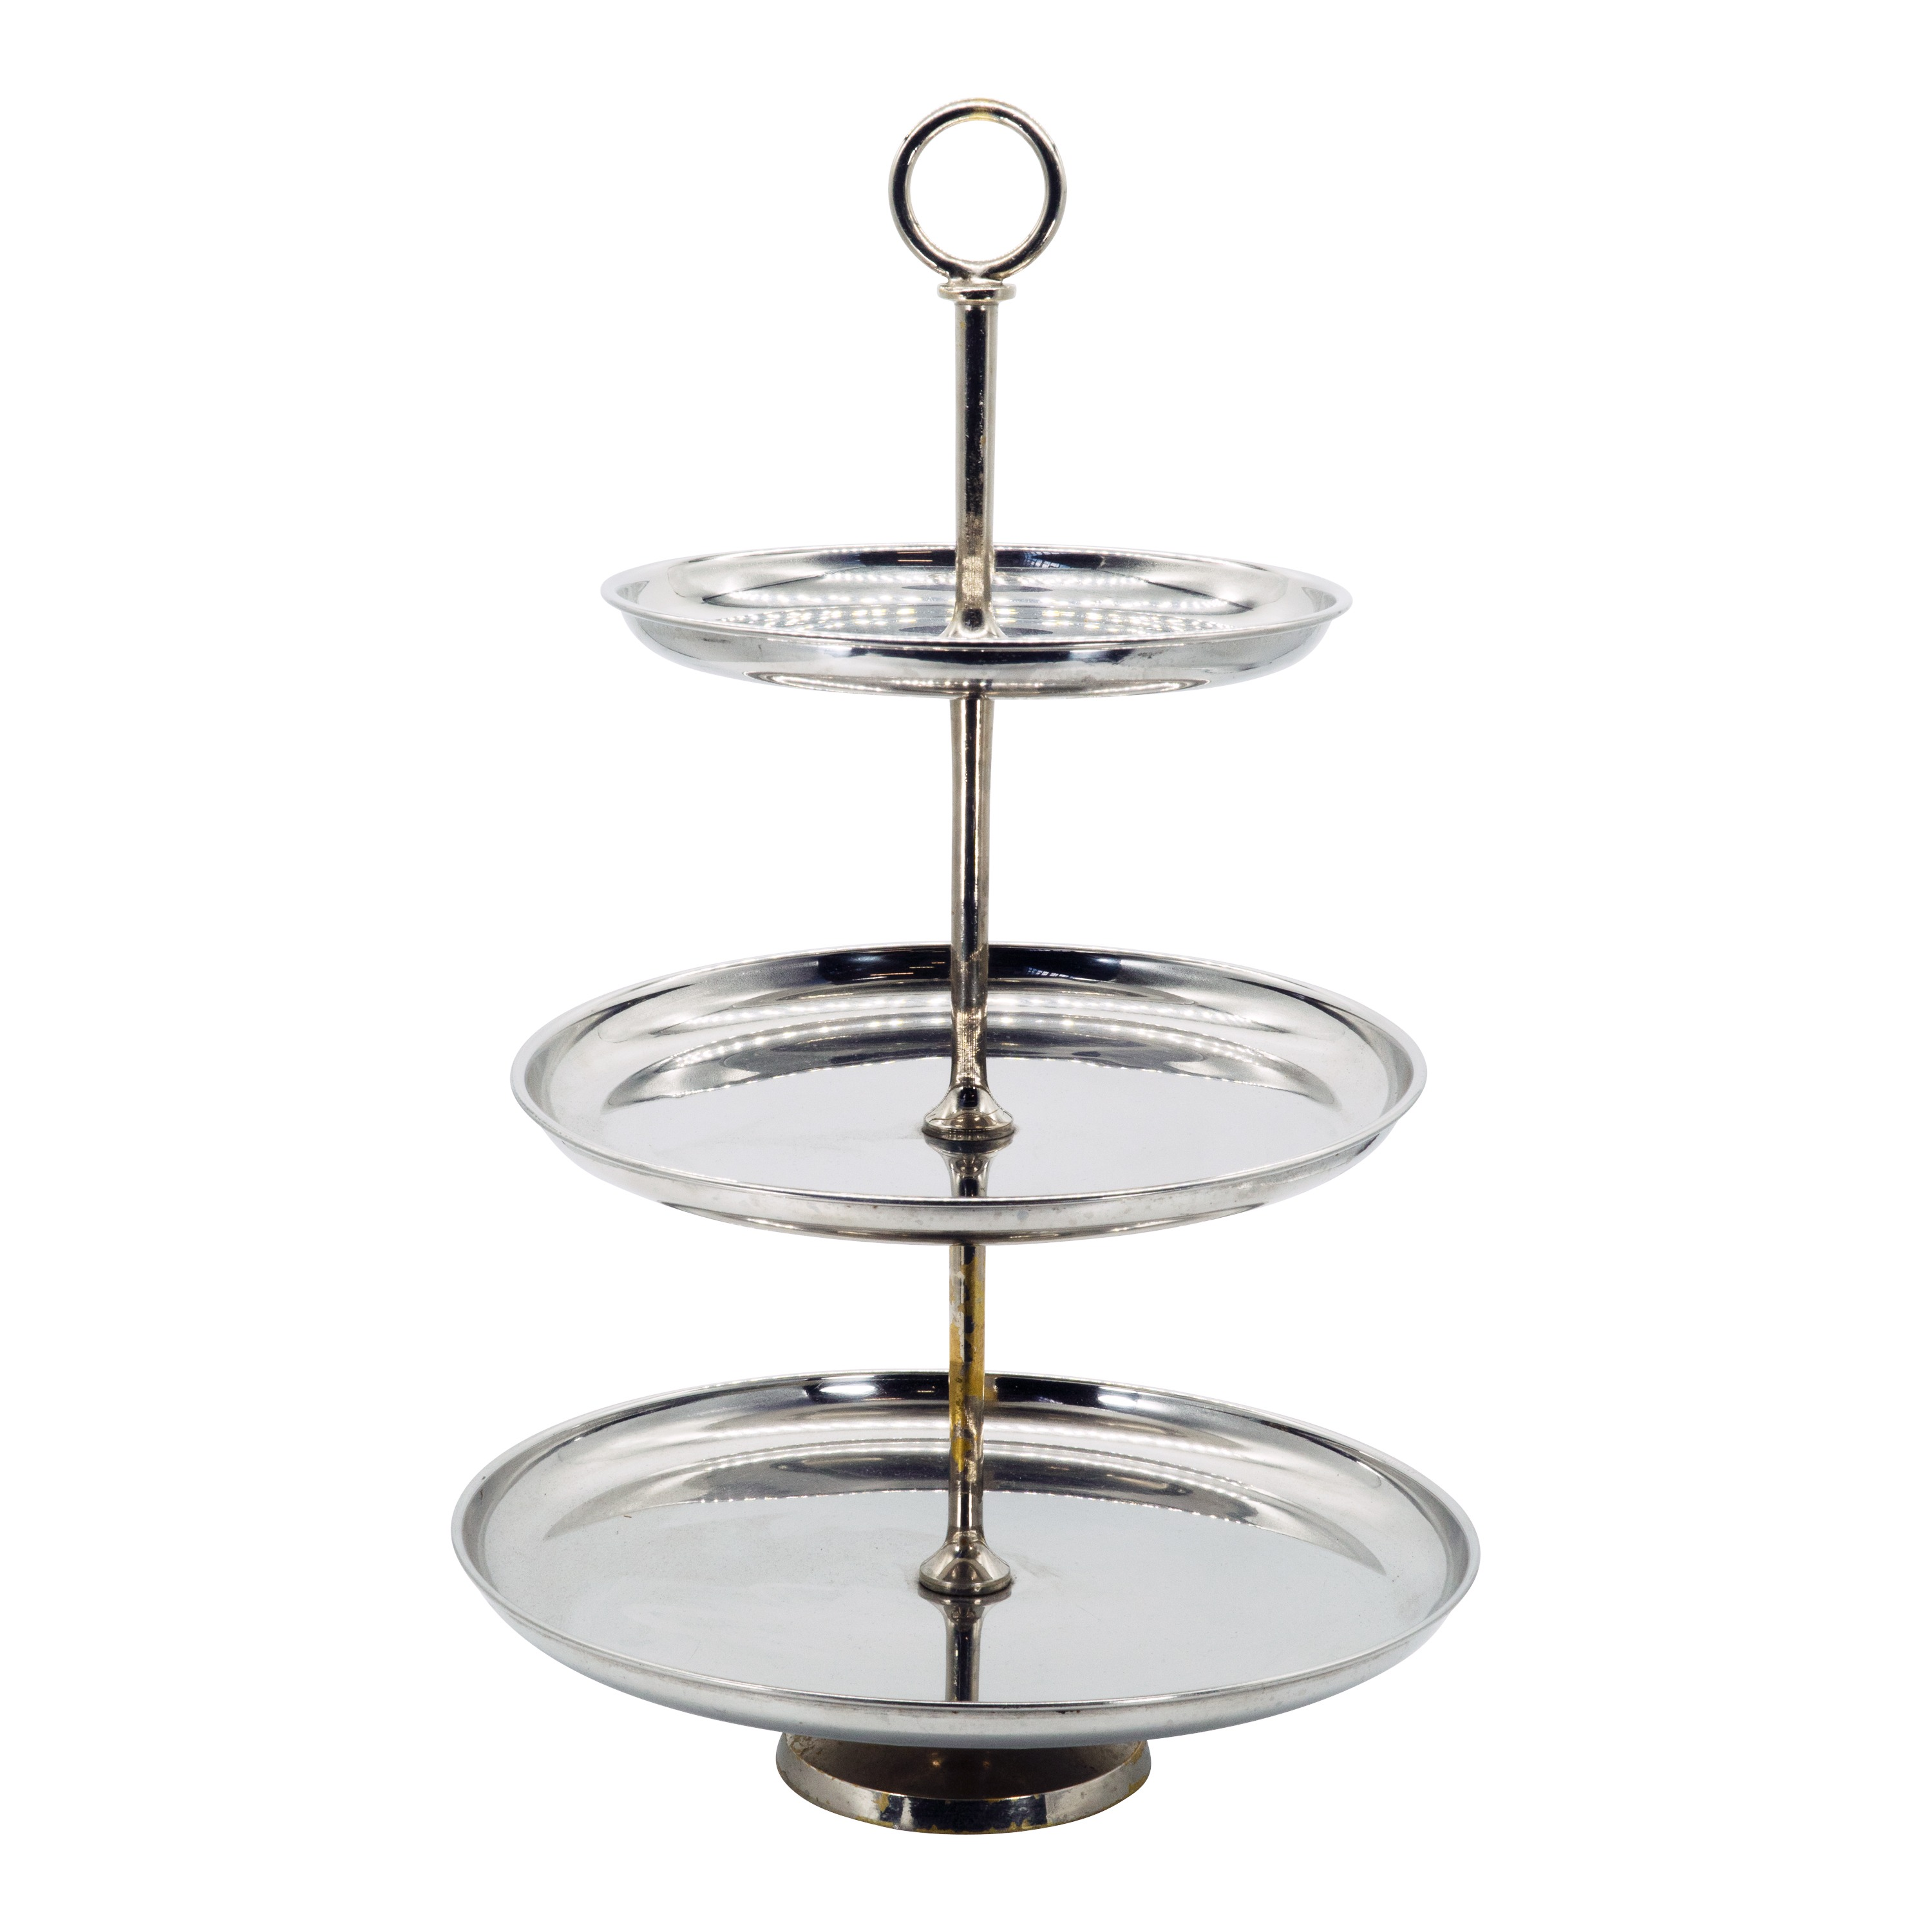 Medium Silver 3 Tier Cup Cake Stand